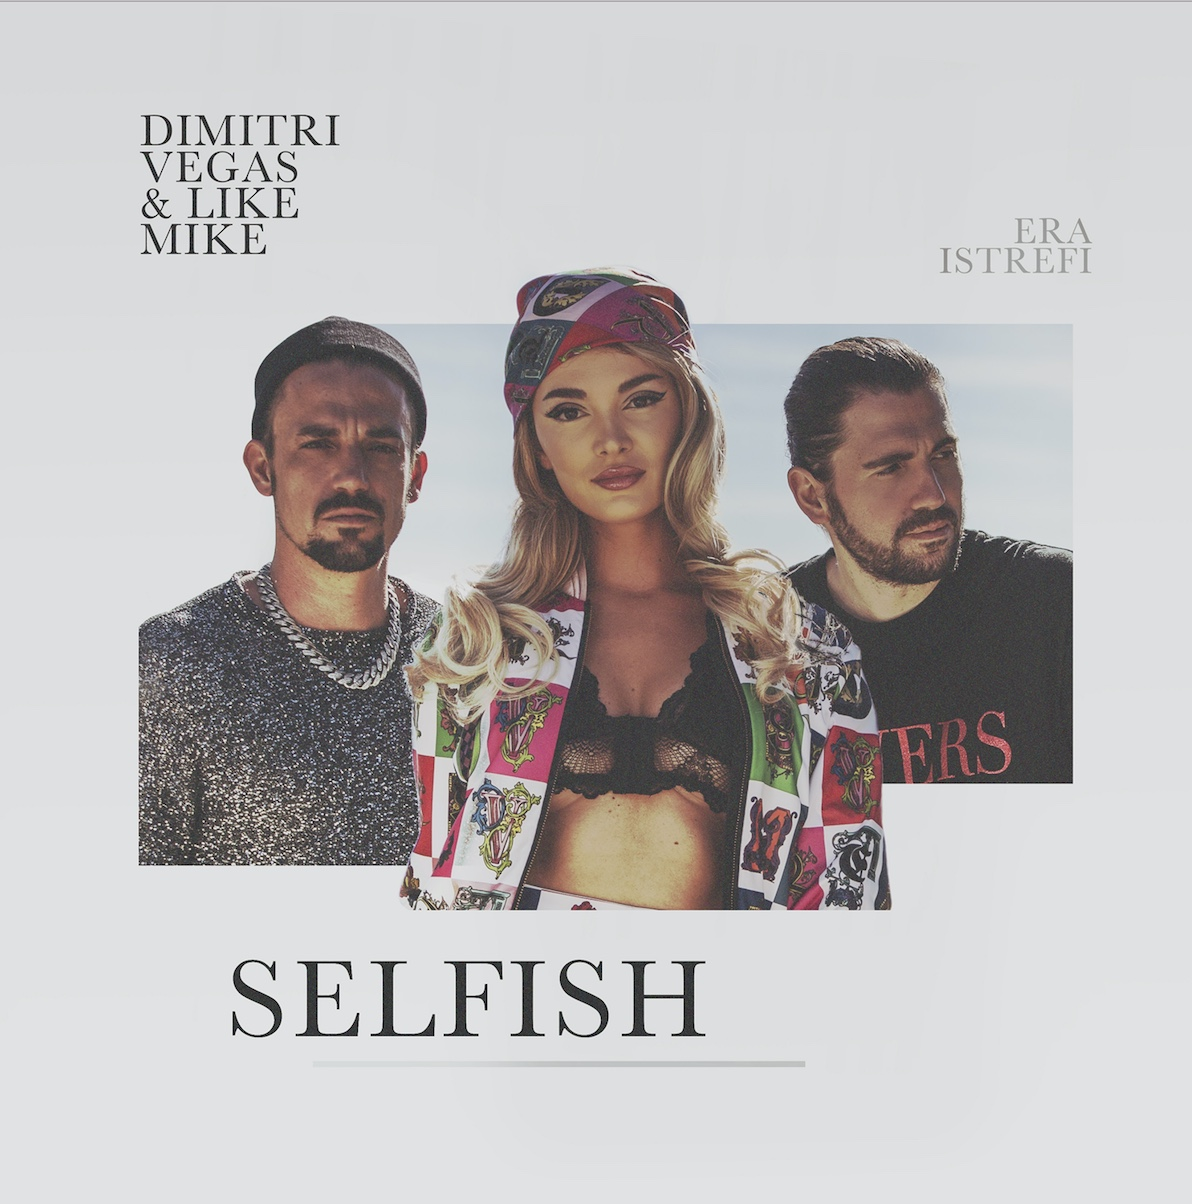 Dimitri Vegas & Like Mike ft. Era Istrefi - Selfish